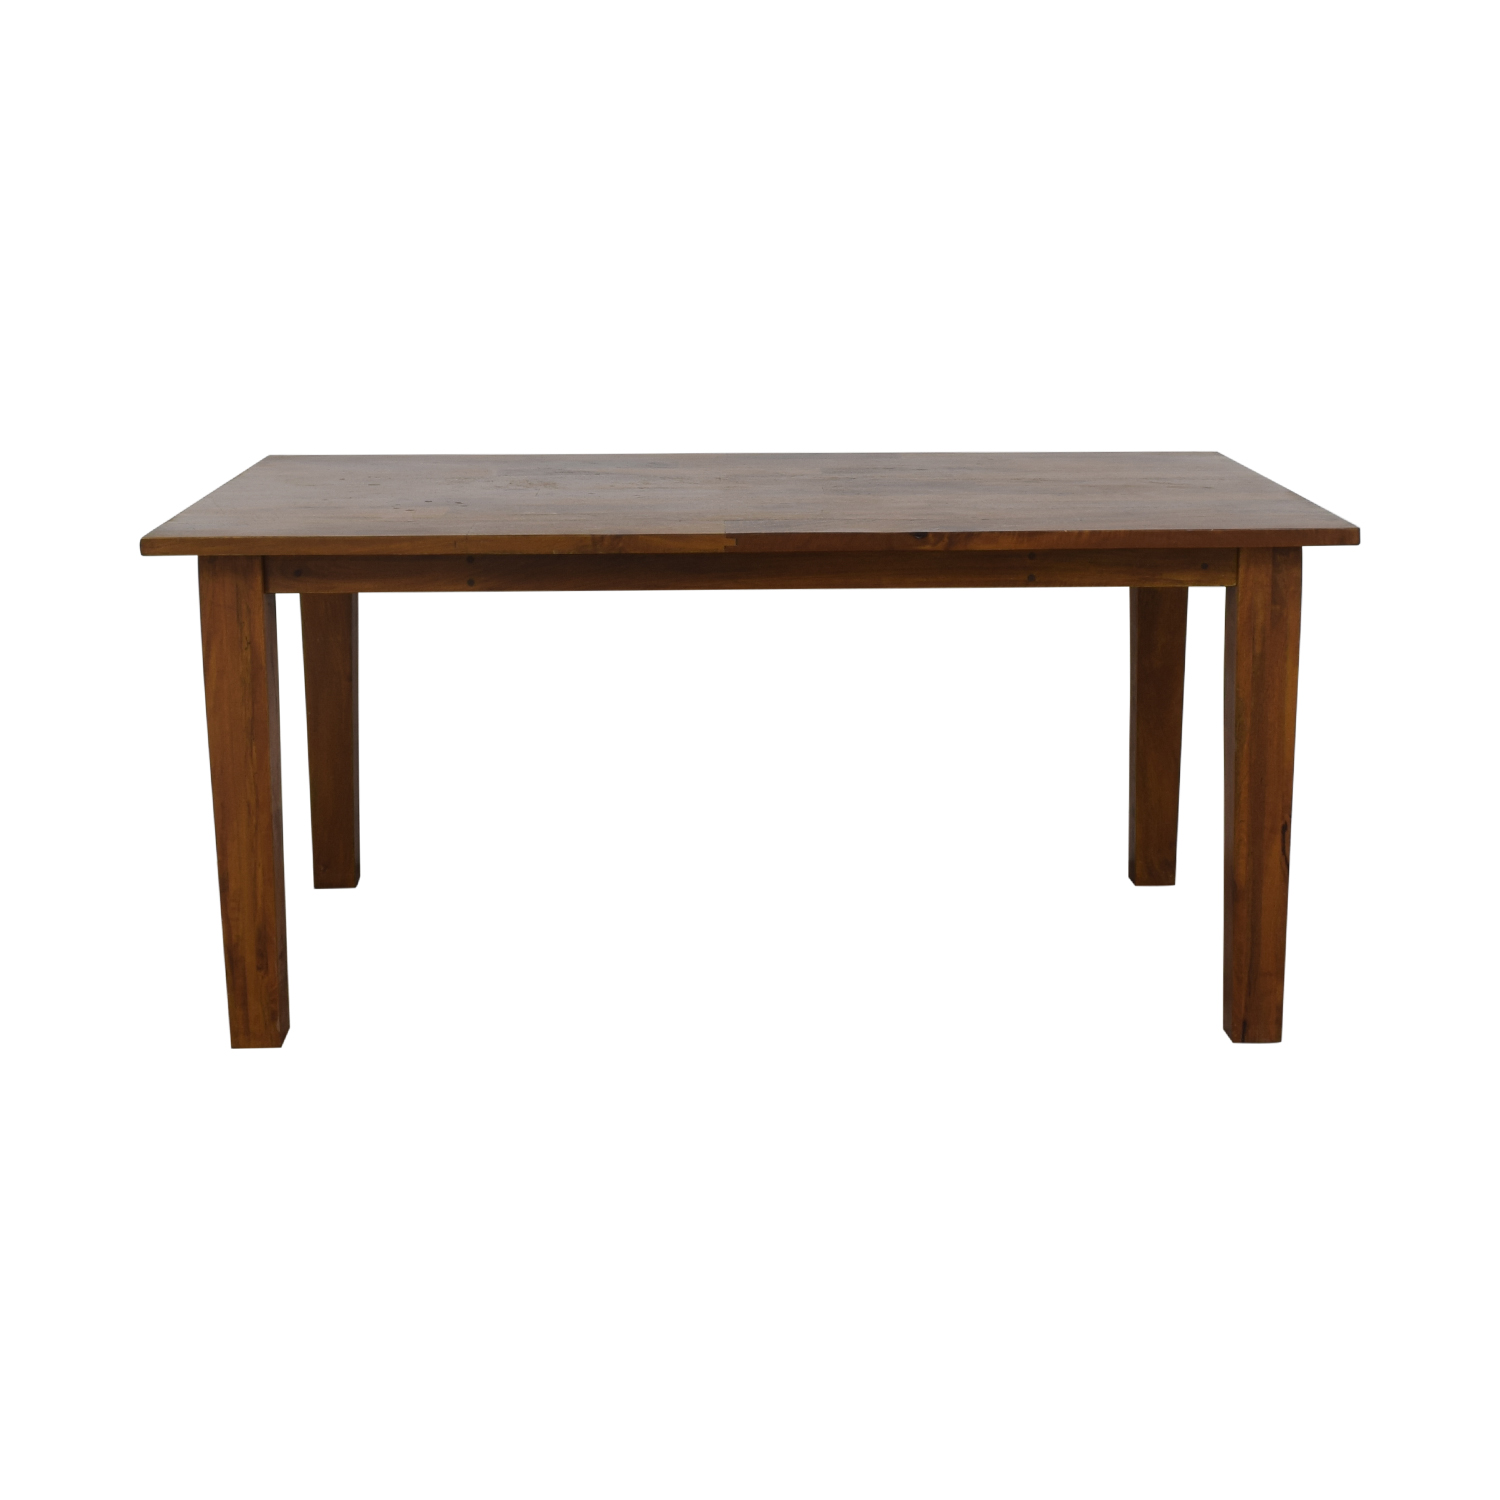 38 Off Crate Barrel Basque Honey Dining Table Tables